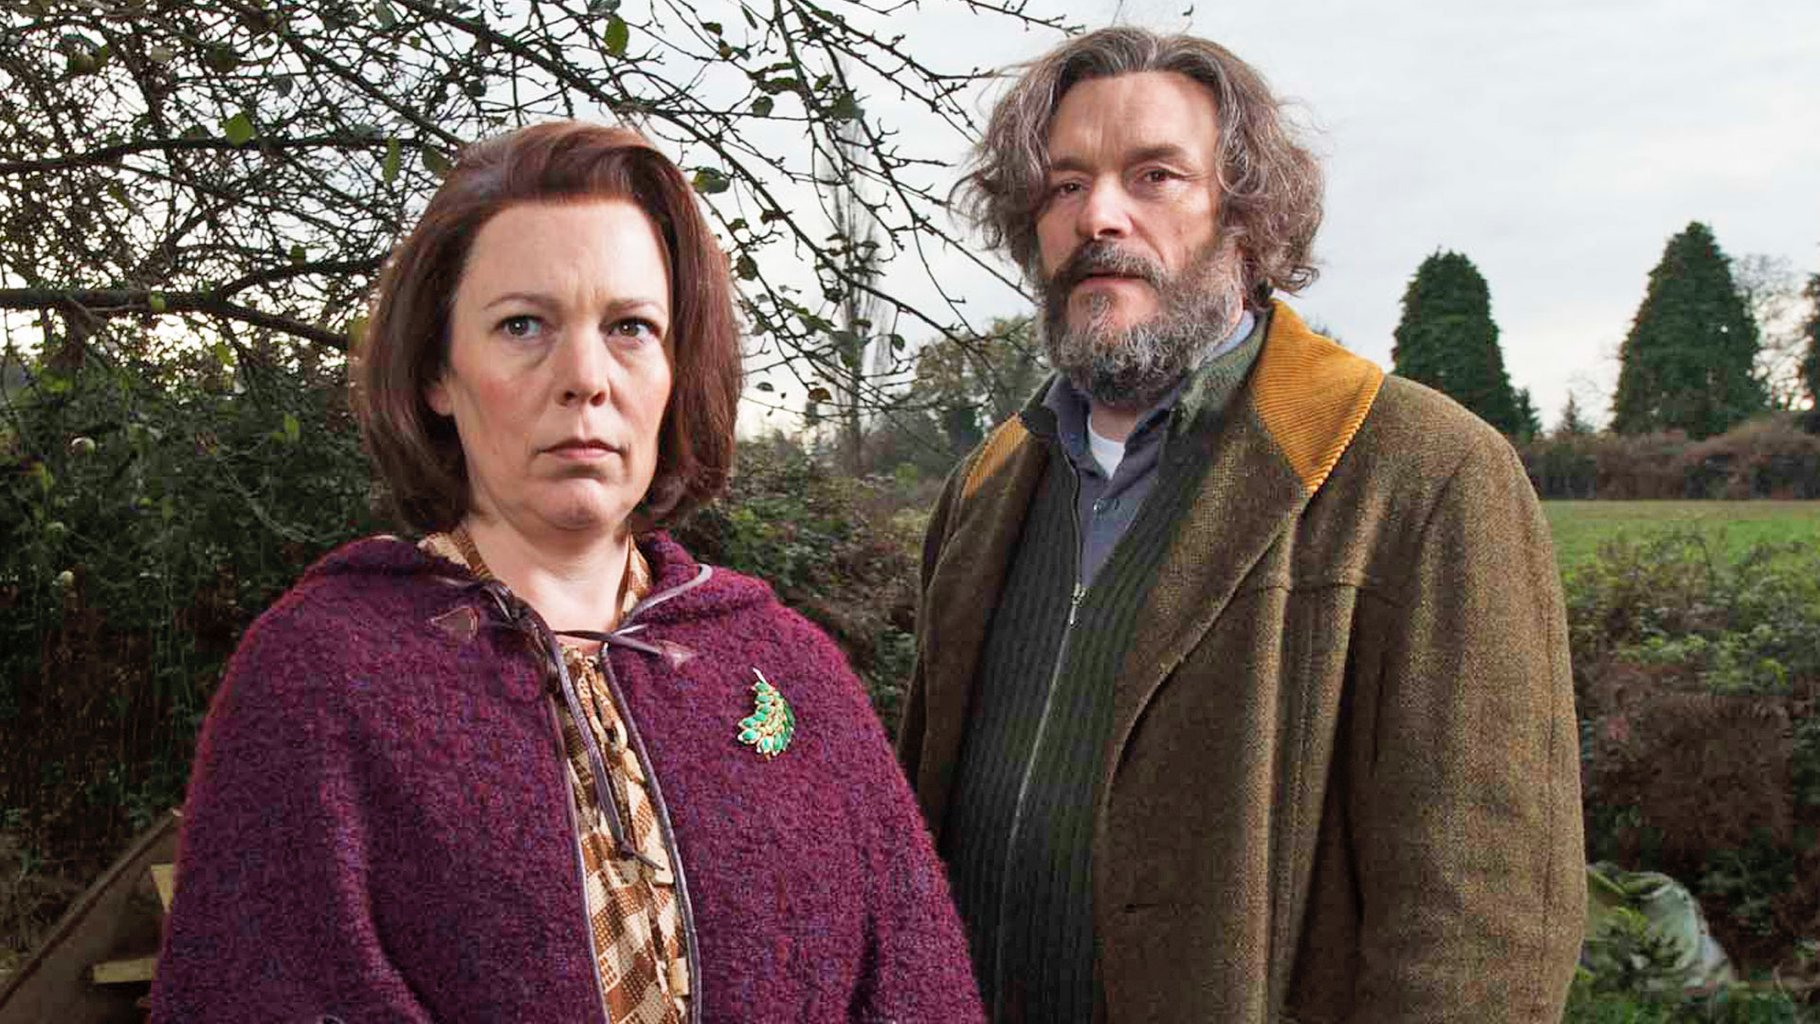 Julian Barratt and Olivia Coleman- Flowers